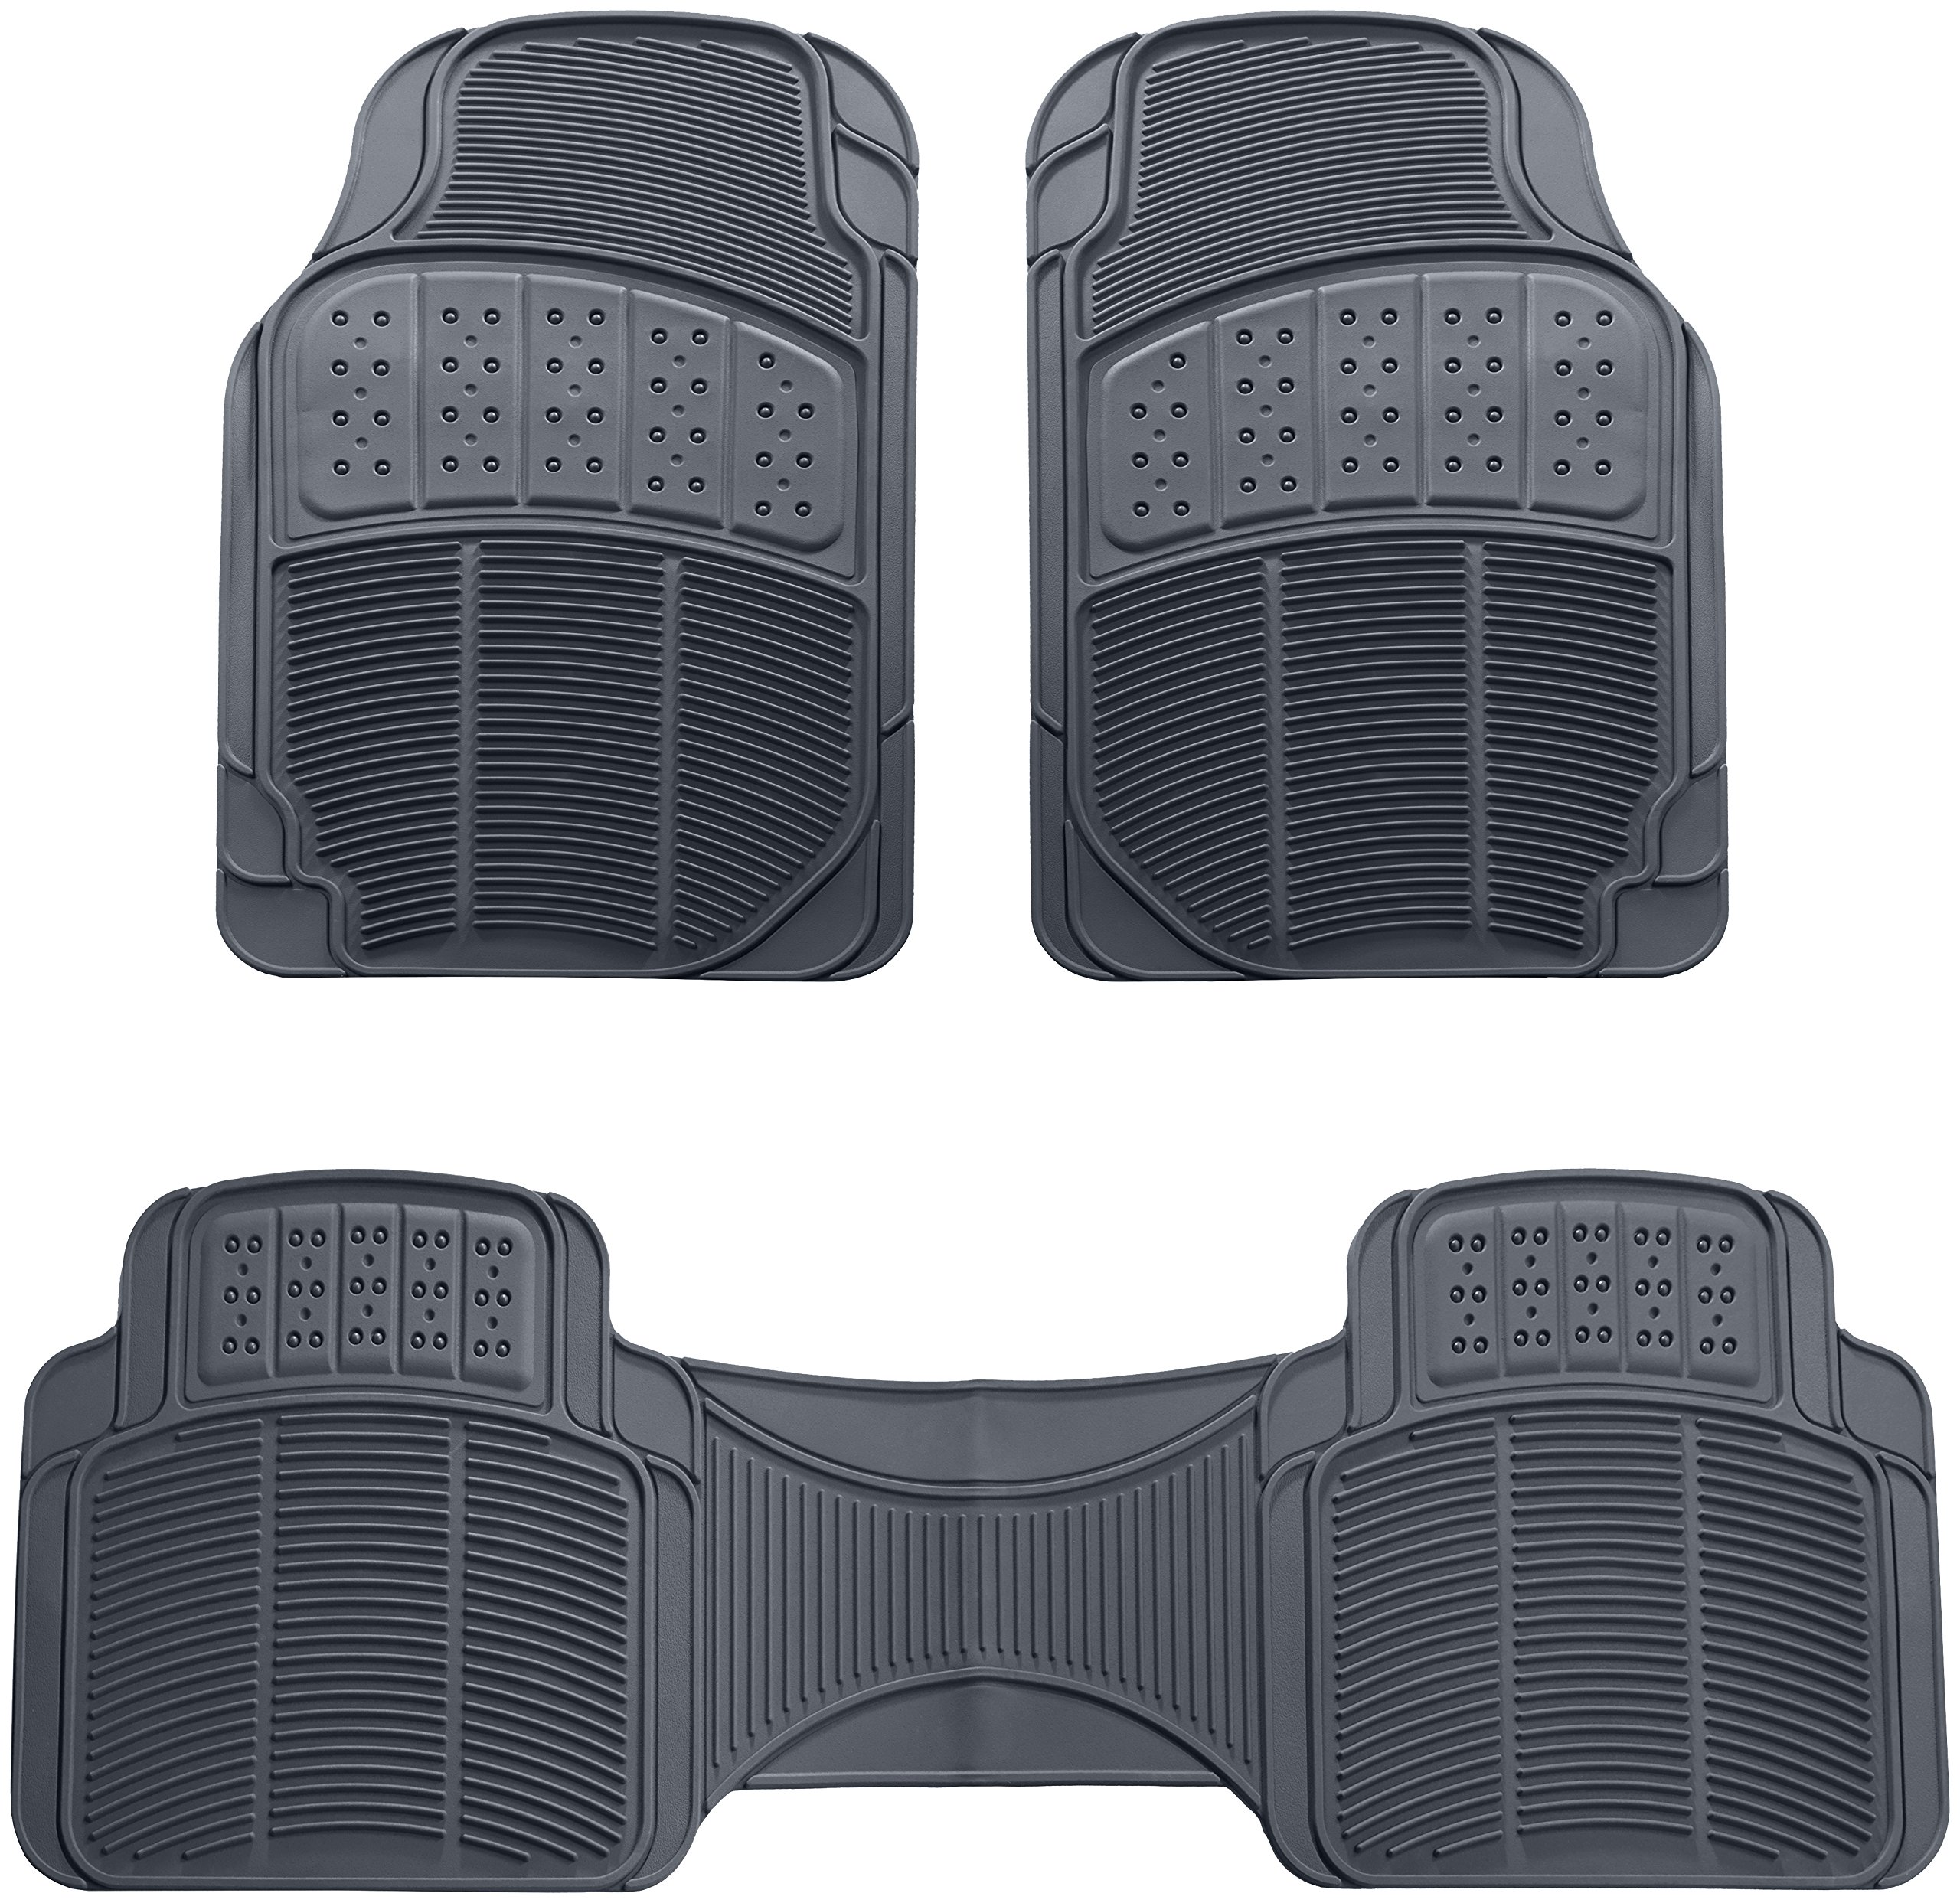 AmazonBasics 3 Piece Car Floor Mat, Gray